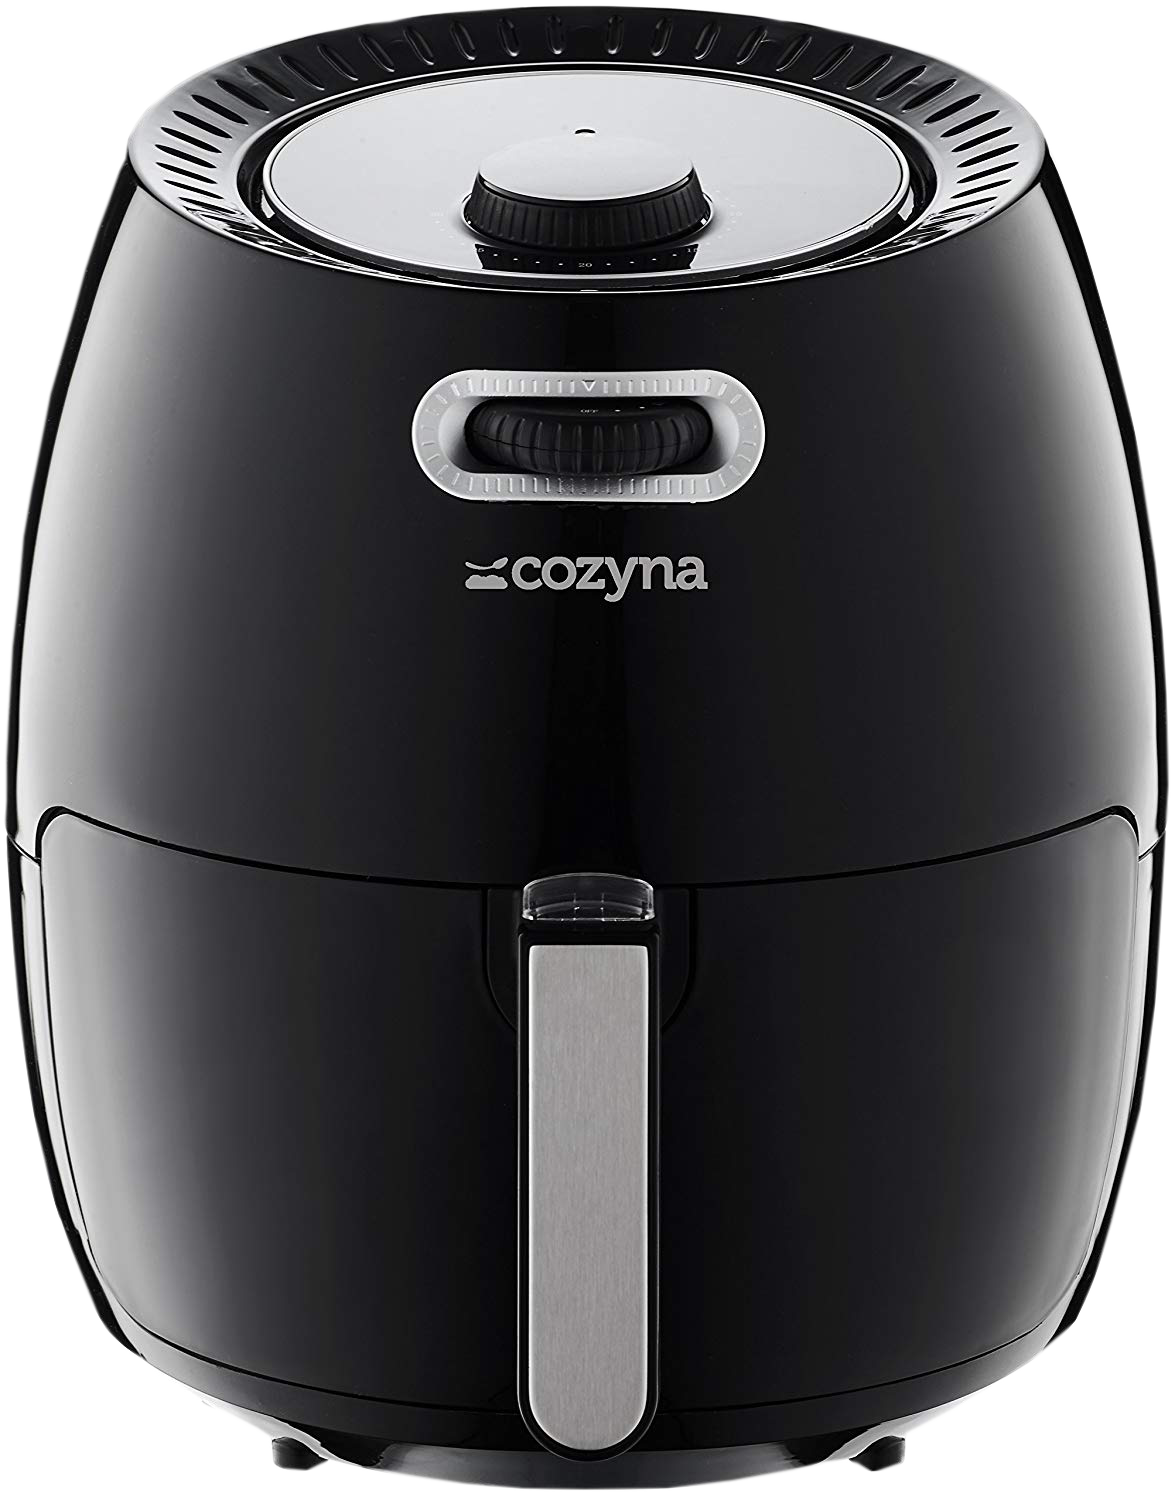 Cozyna Airfryer Review